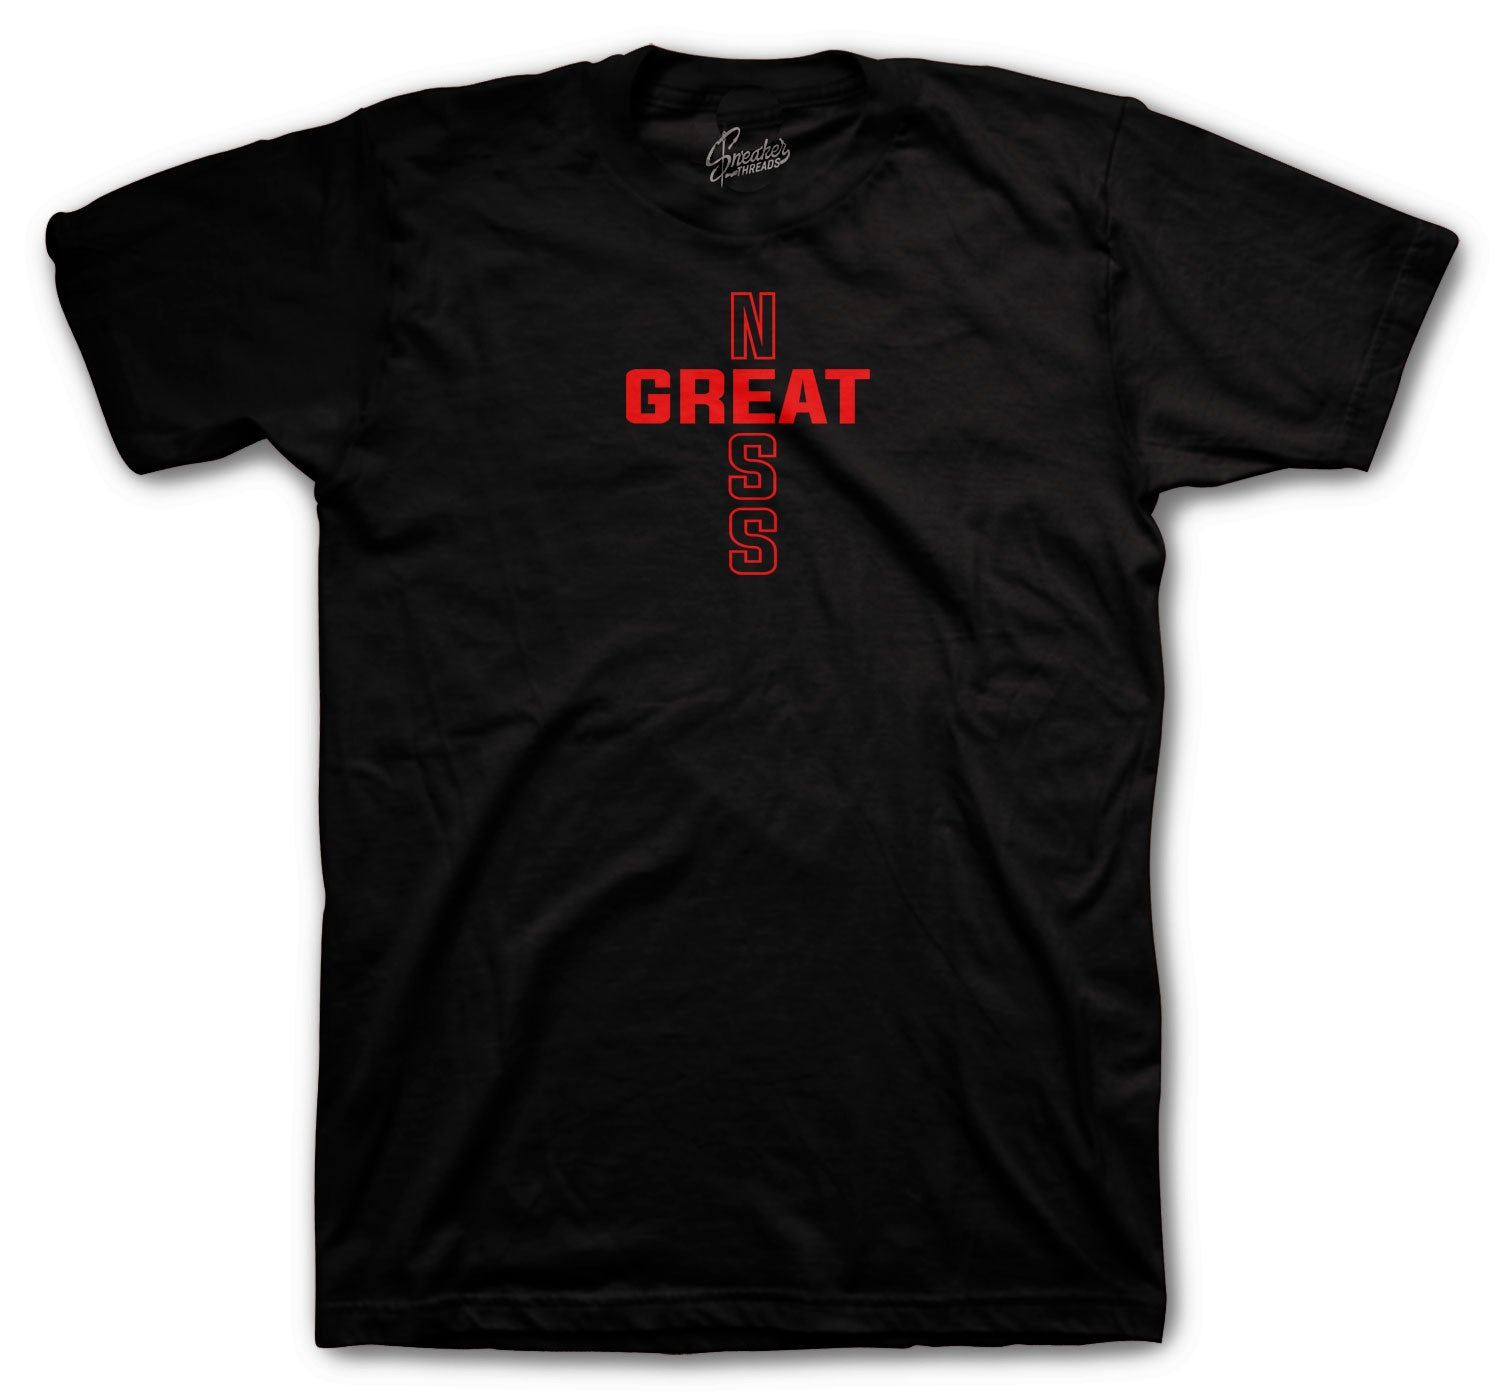 Yeezy 350 Bred Greatness Cross Shirt